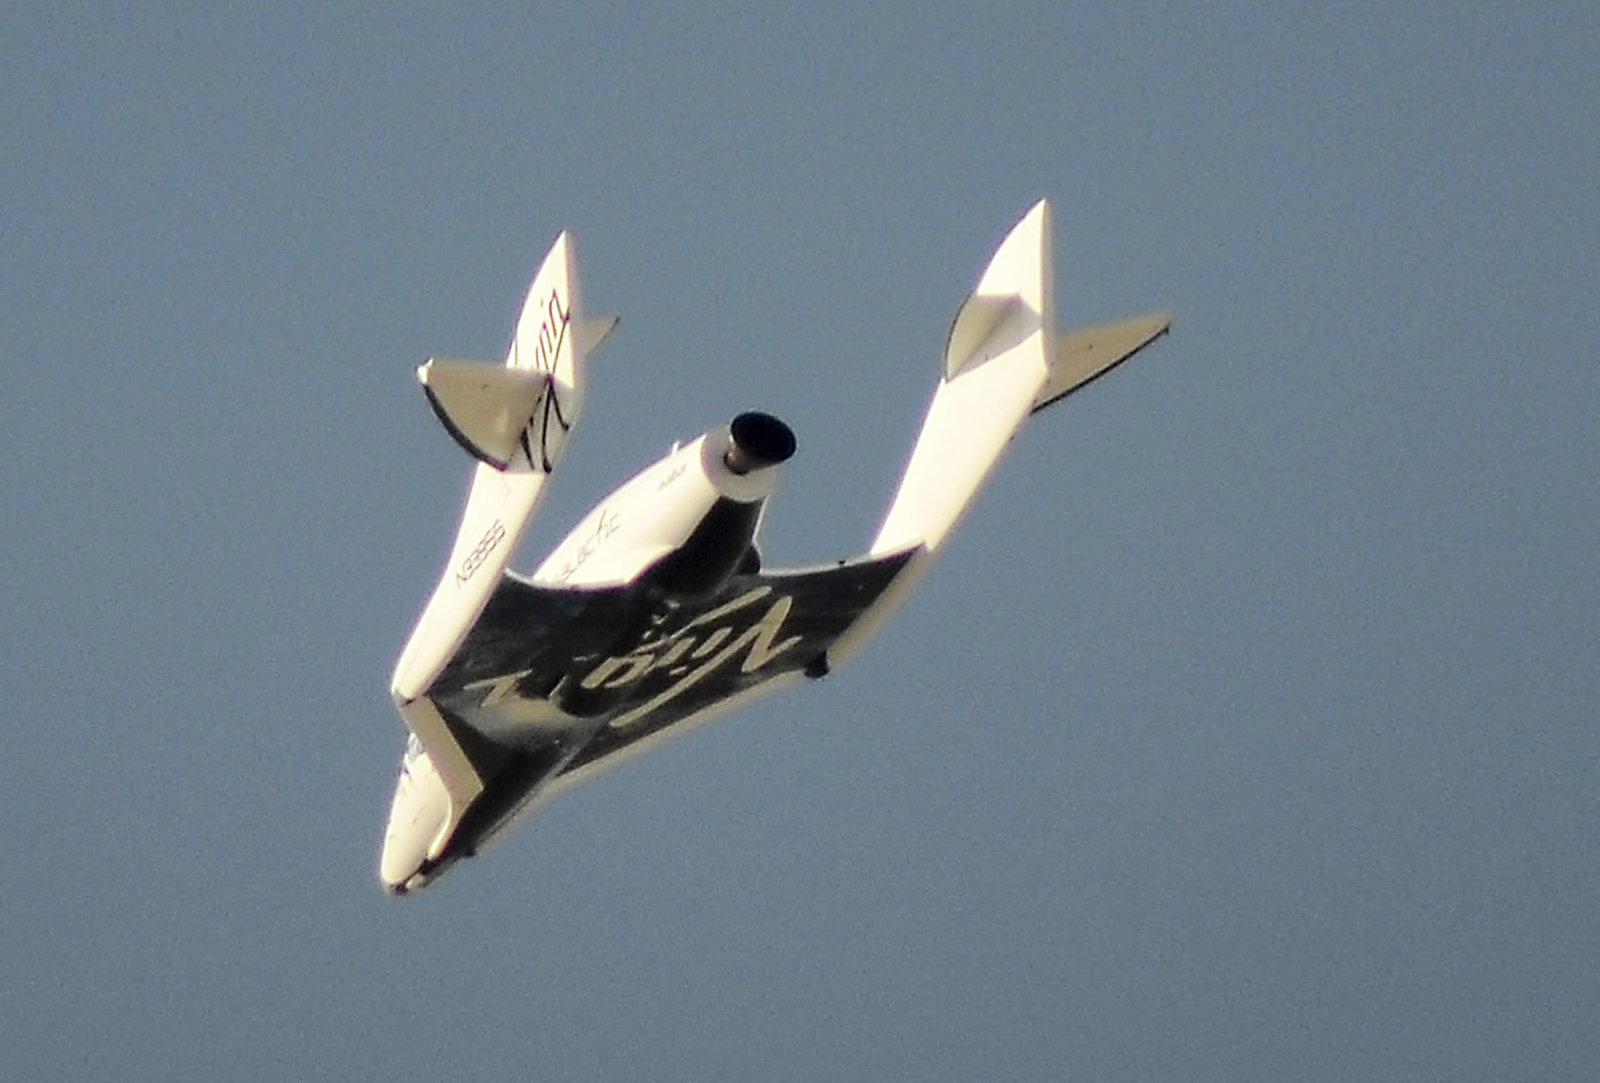 Virgin Galactic's SpaceShipTwo flies over the Mojave Desert in California April 29, 2013 shortly before successfully completing a test flight that broke the sound barrier. Virgin Galactic has been granted an operating license to fly its passenger rocketship with the world's first paying space tourists aboard once final safety tests are completed, the Federal Aviation Administration said August 1, 2016.   REUTERS/Gene Blevins/File Photo